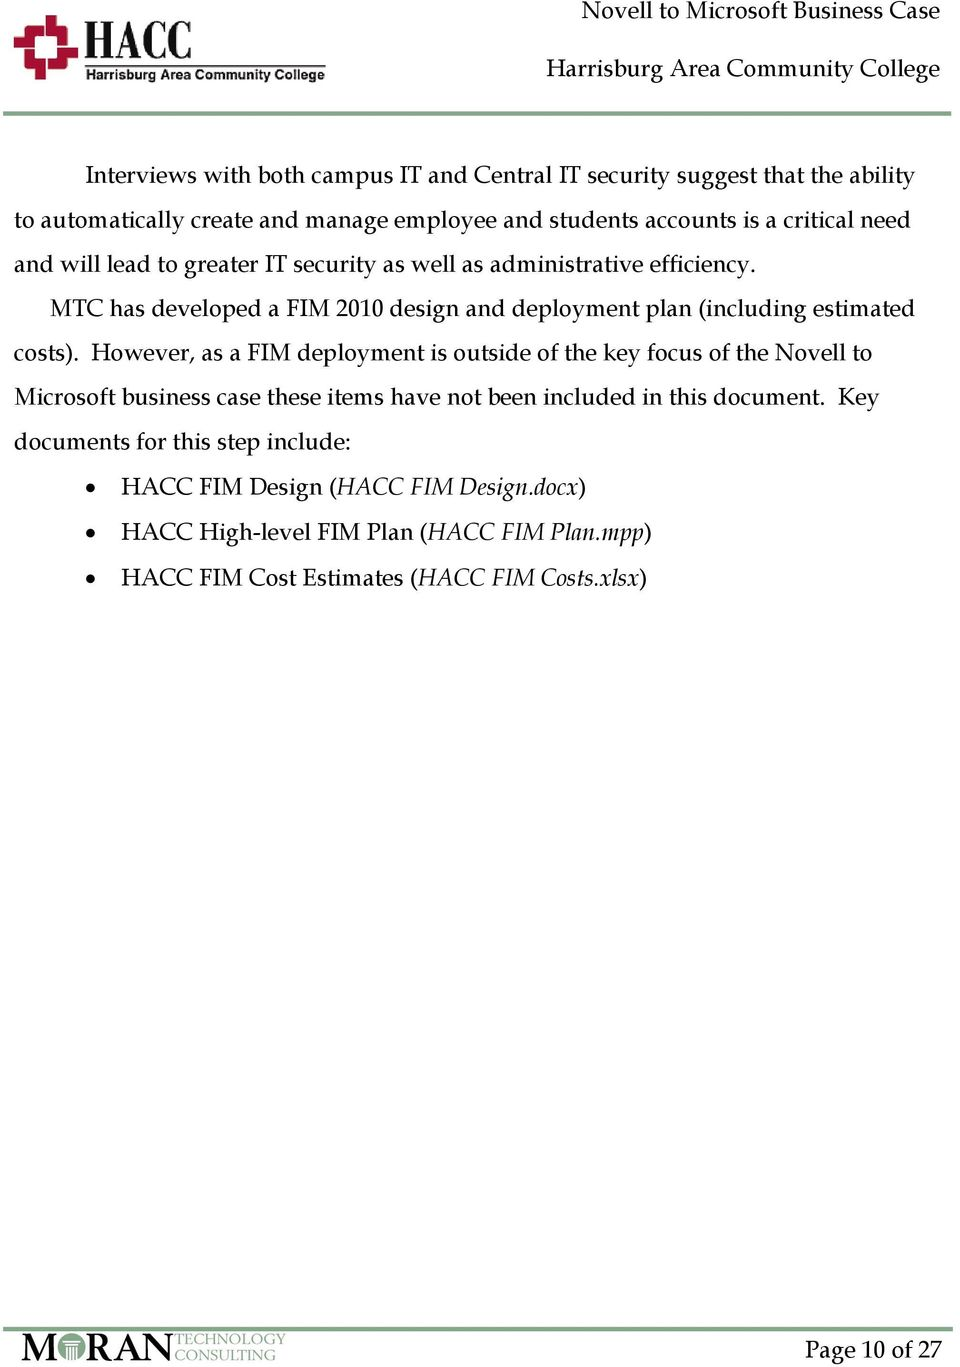 However, as a FIM deployment is outside of the key focus of the Novell to Microsoft business case these items have not been included in this document.